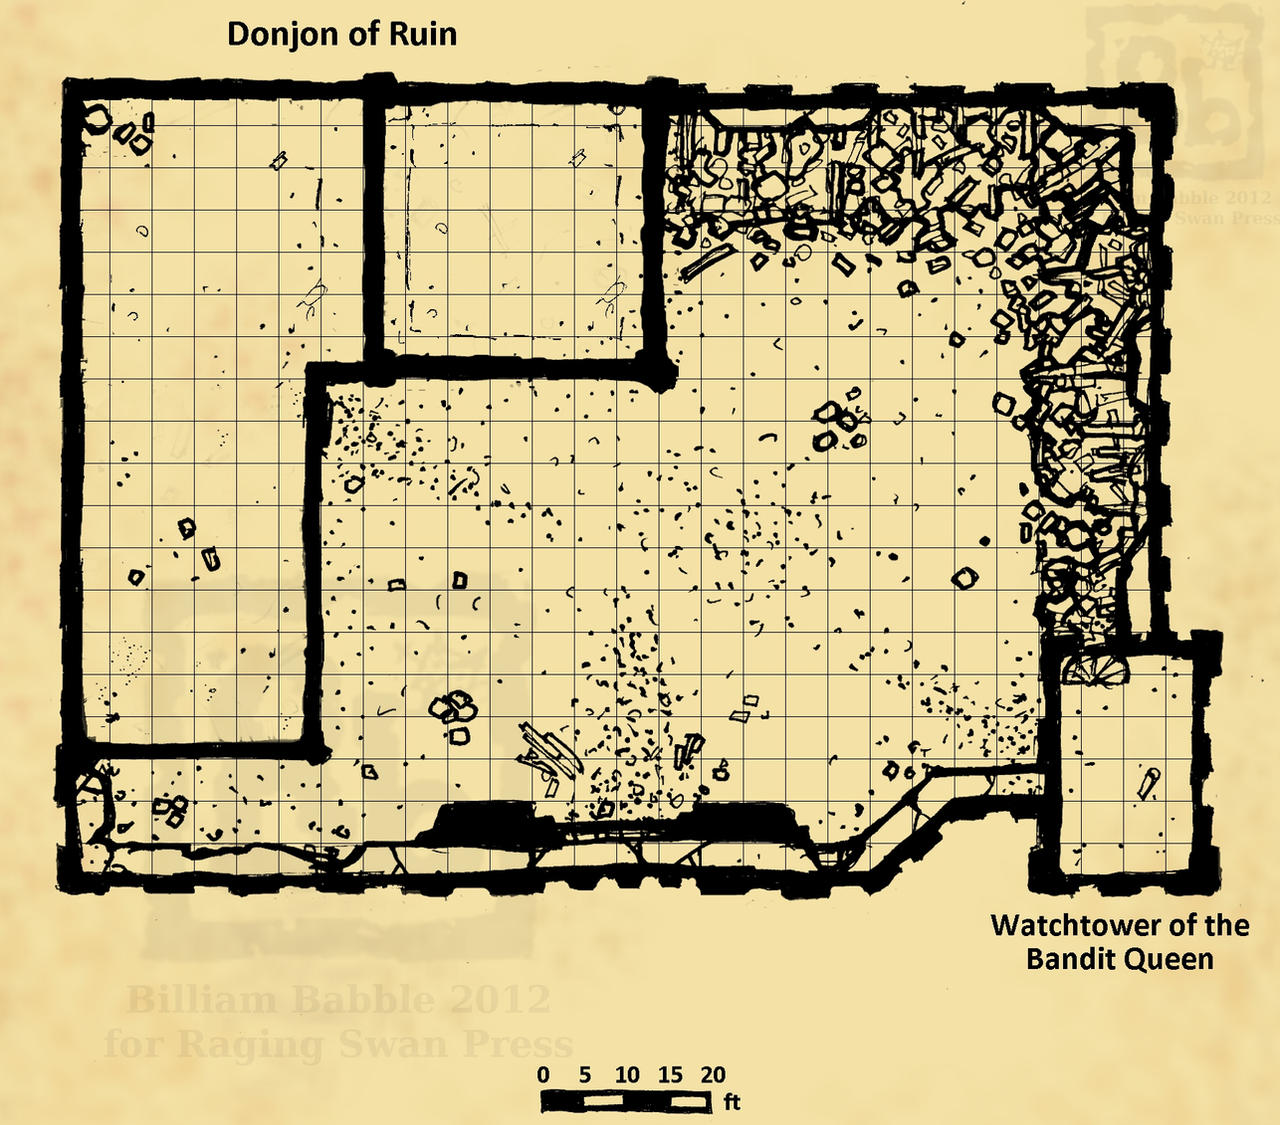 Ruined Keep Map -commission for Raging Swan Press by billiambabble